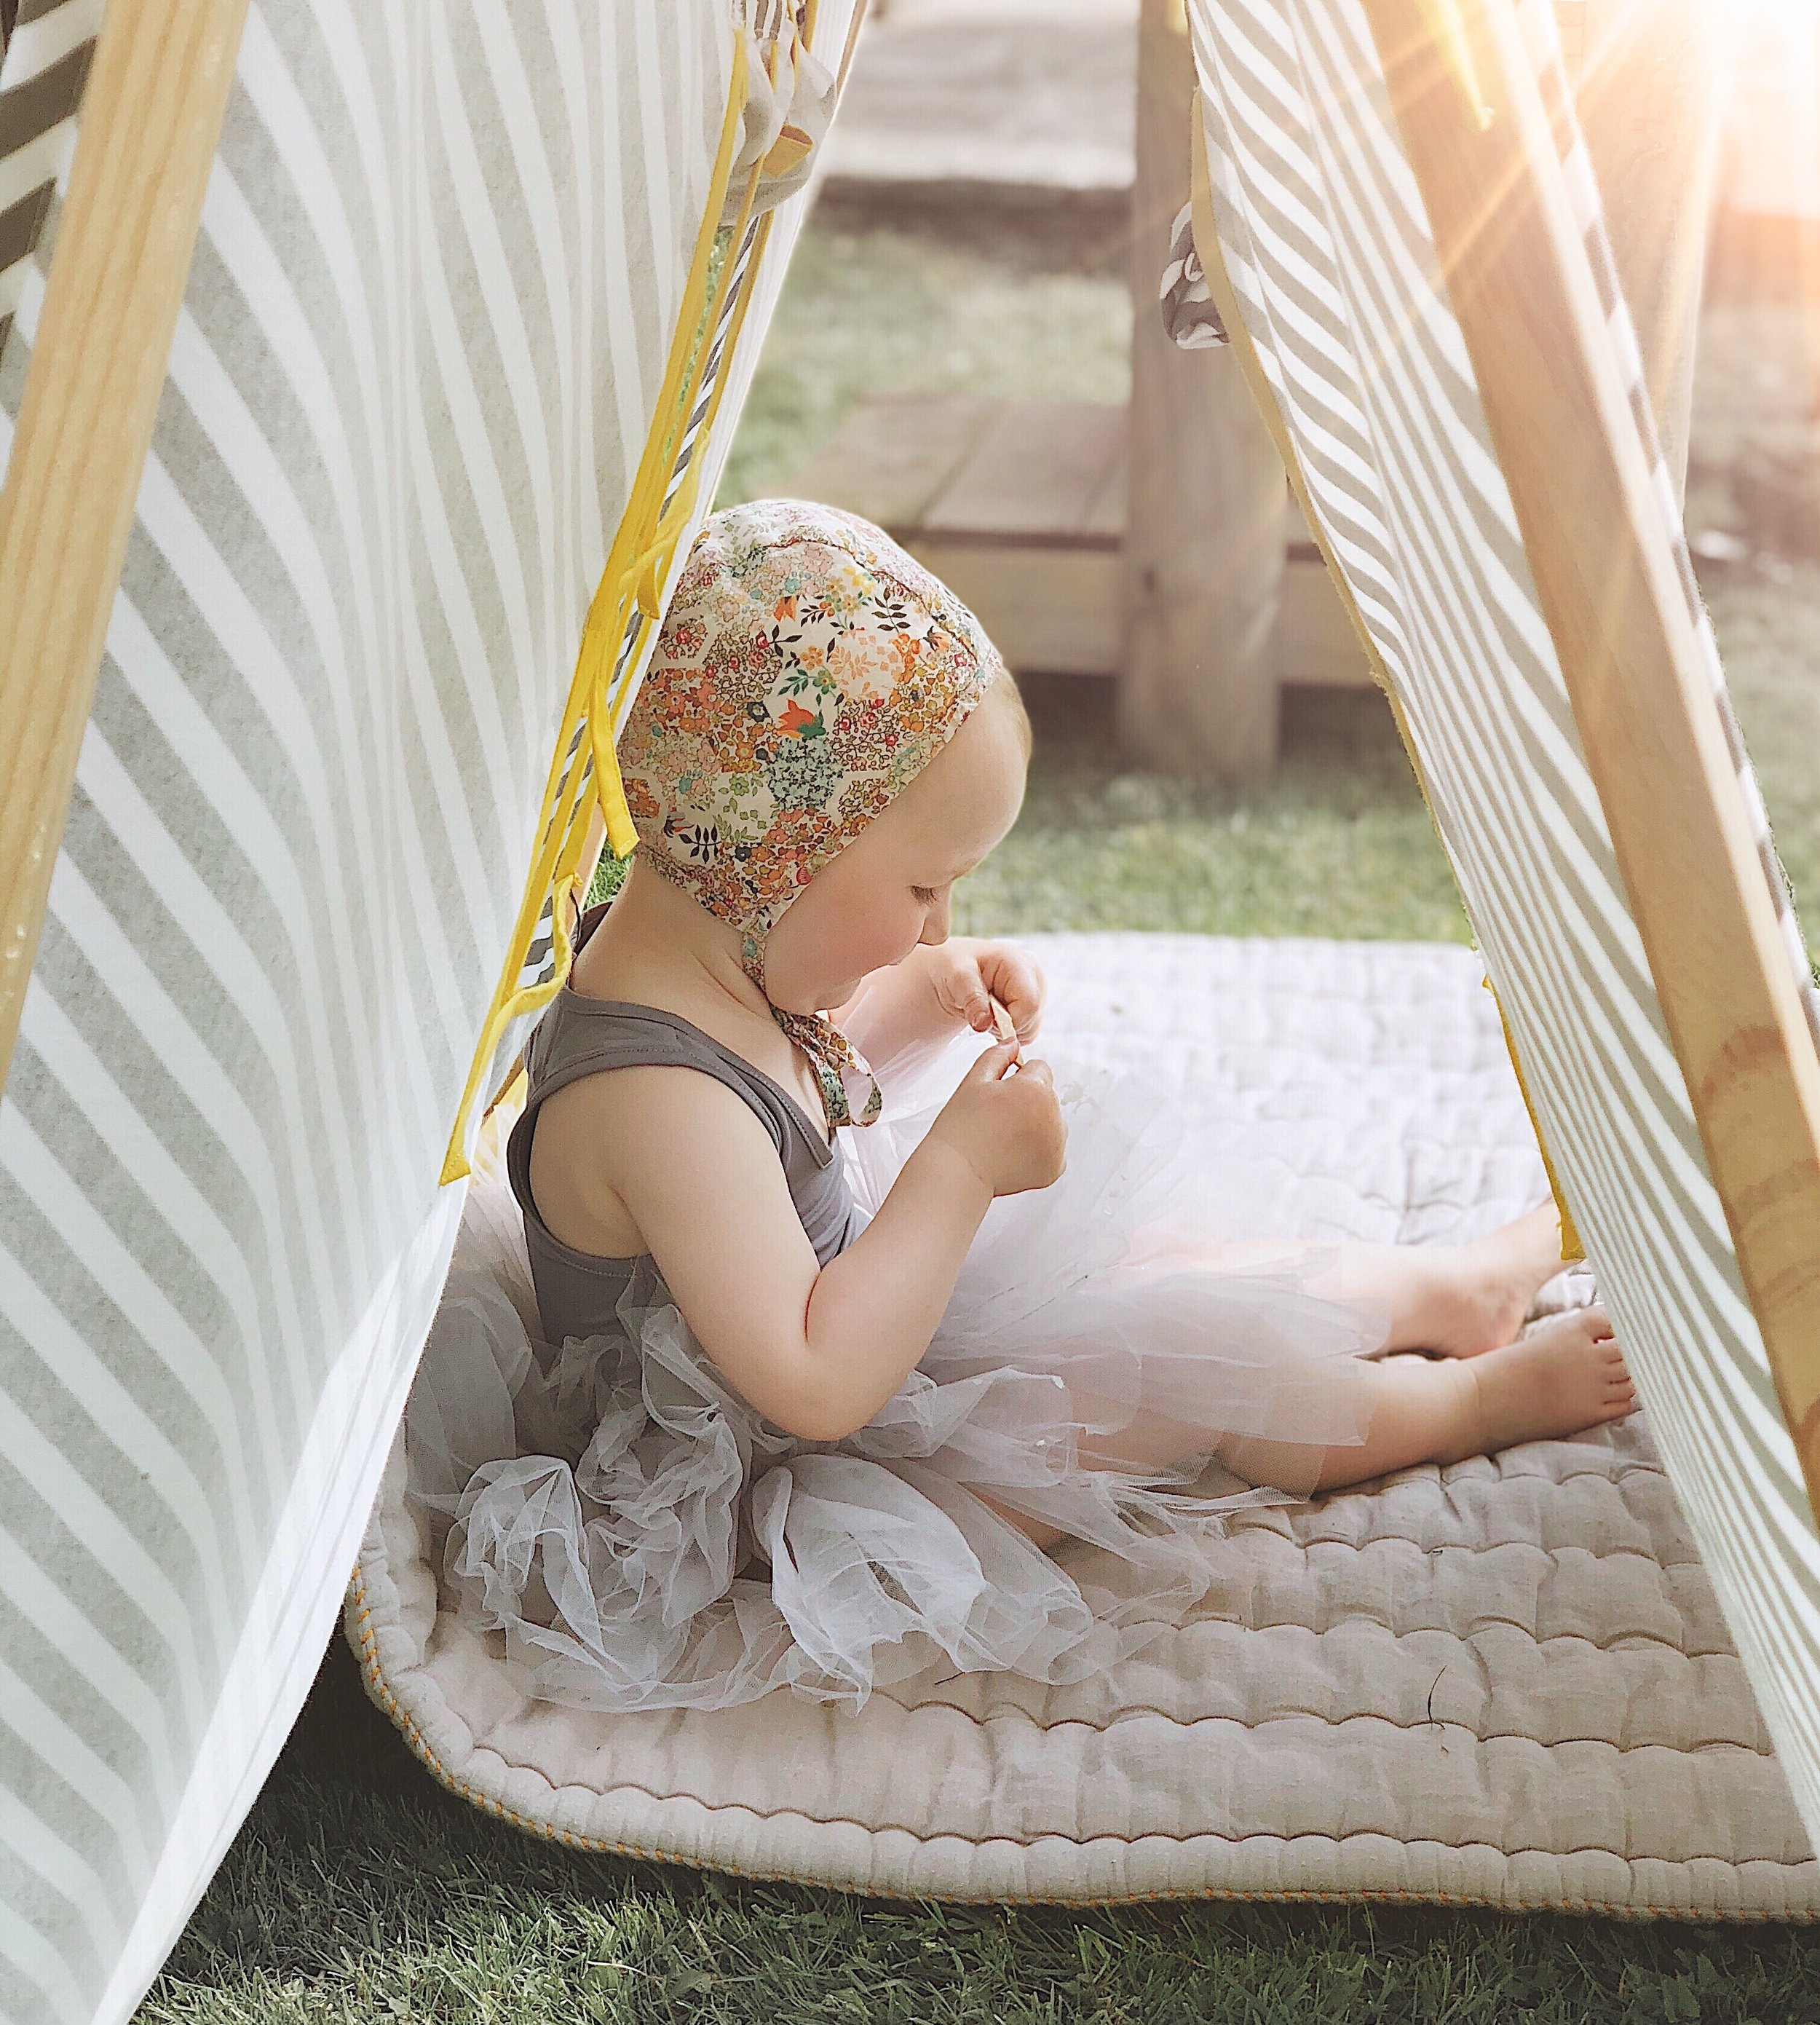 Wearing tutu from Plum NYC, blanket by Camomile London and play tent by Ferm Living Kids.